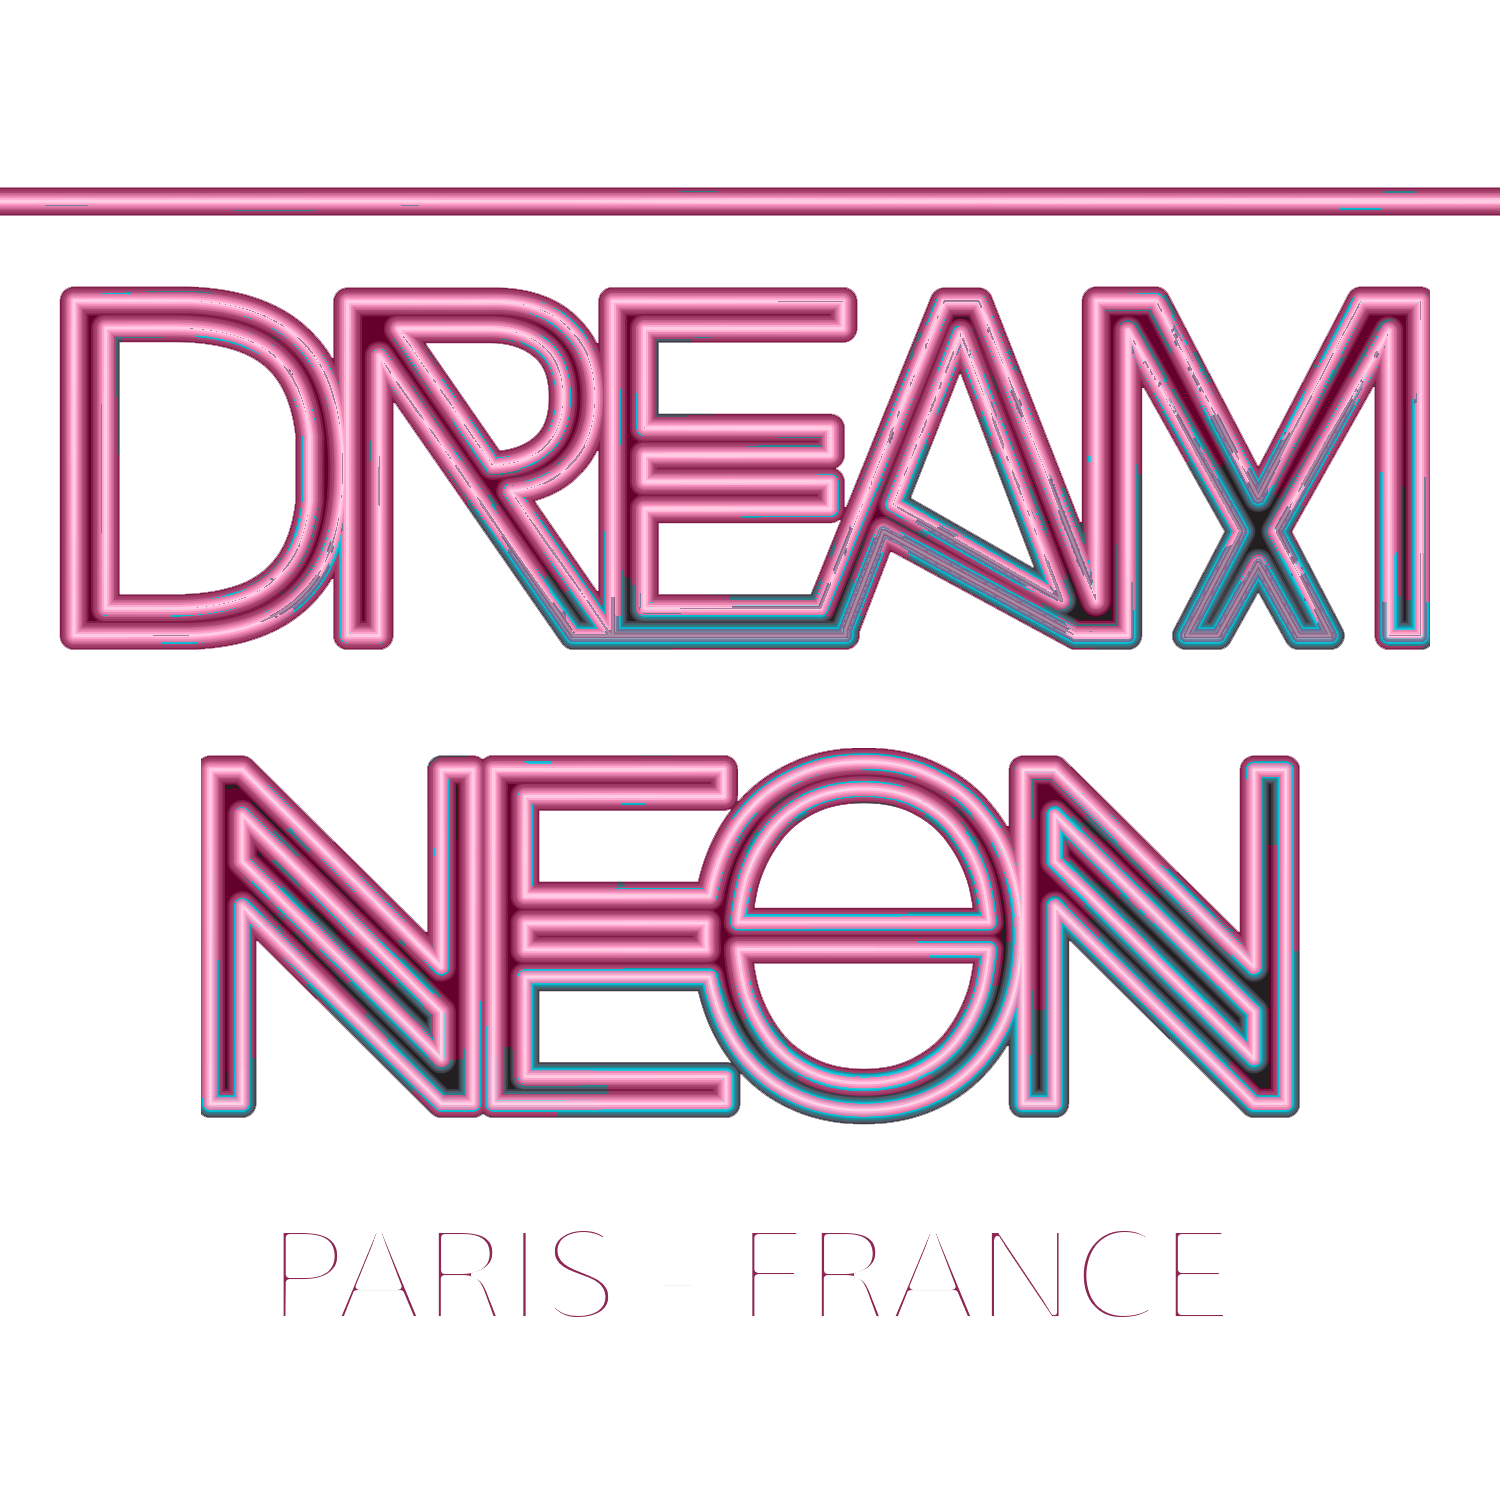 Dream Neon Logo